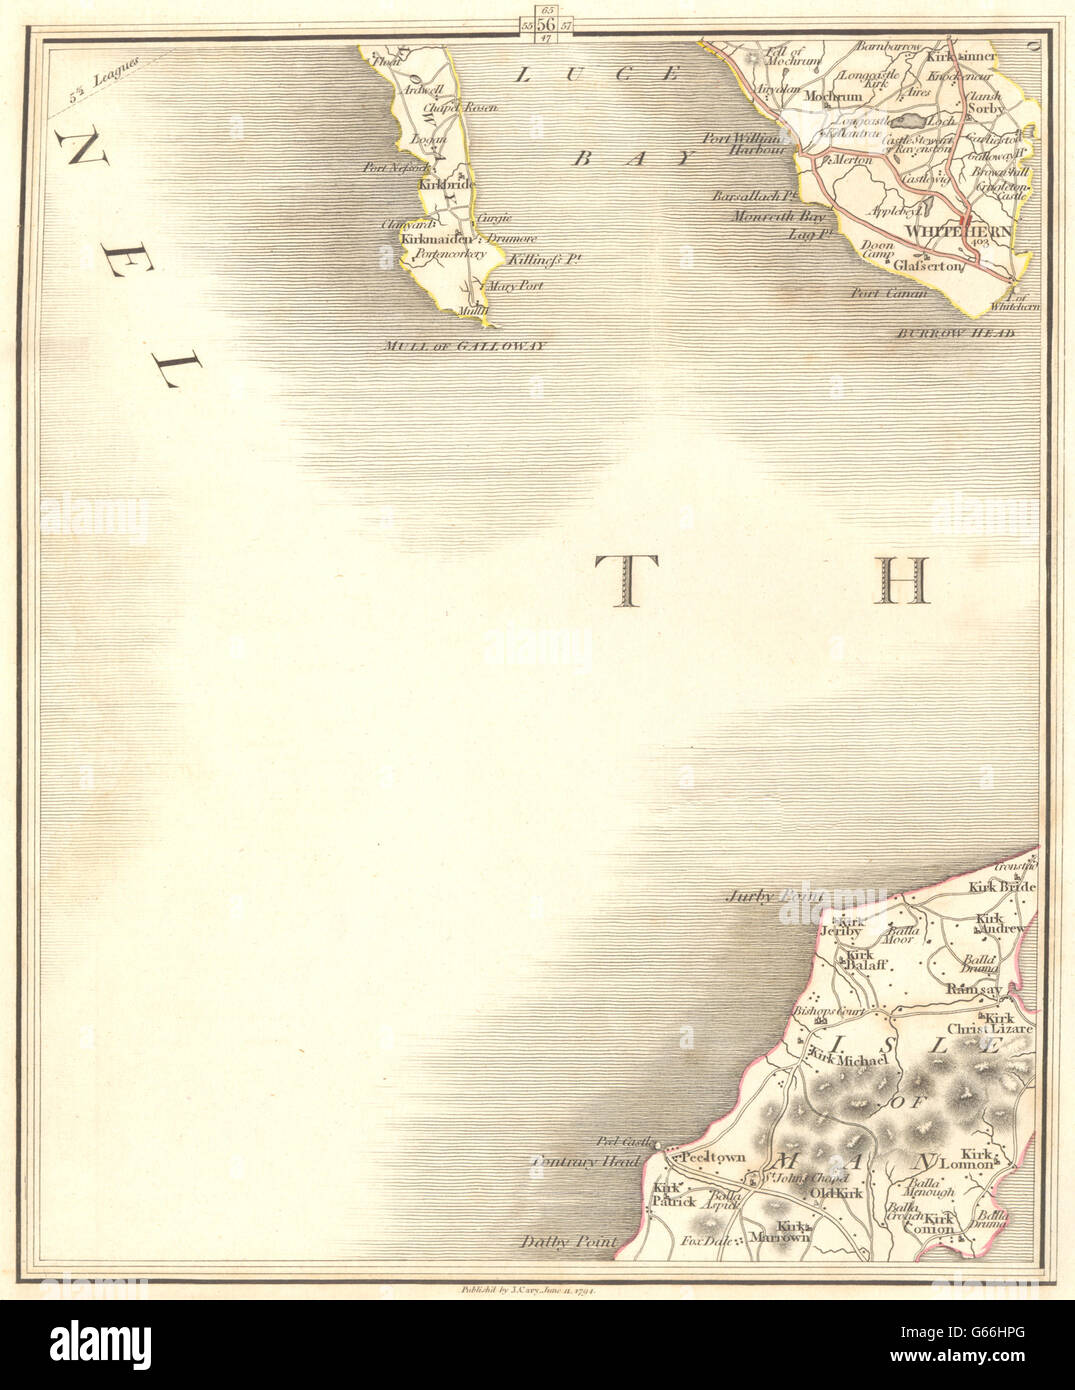 CARY 1794 map Ramsay Peel Luce Bay Whitehorn Machars ISLE OF MAN N /& GALLOWAY